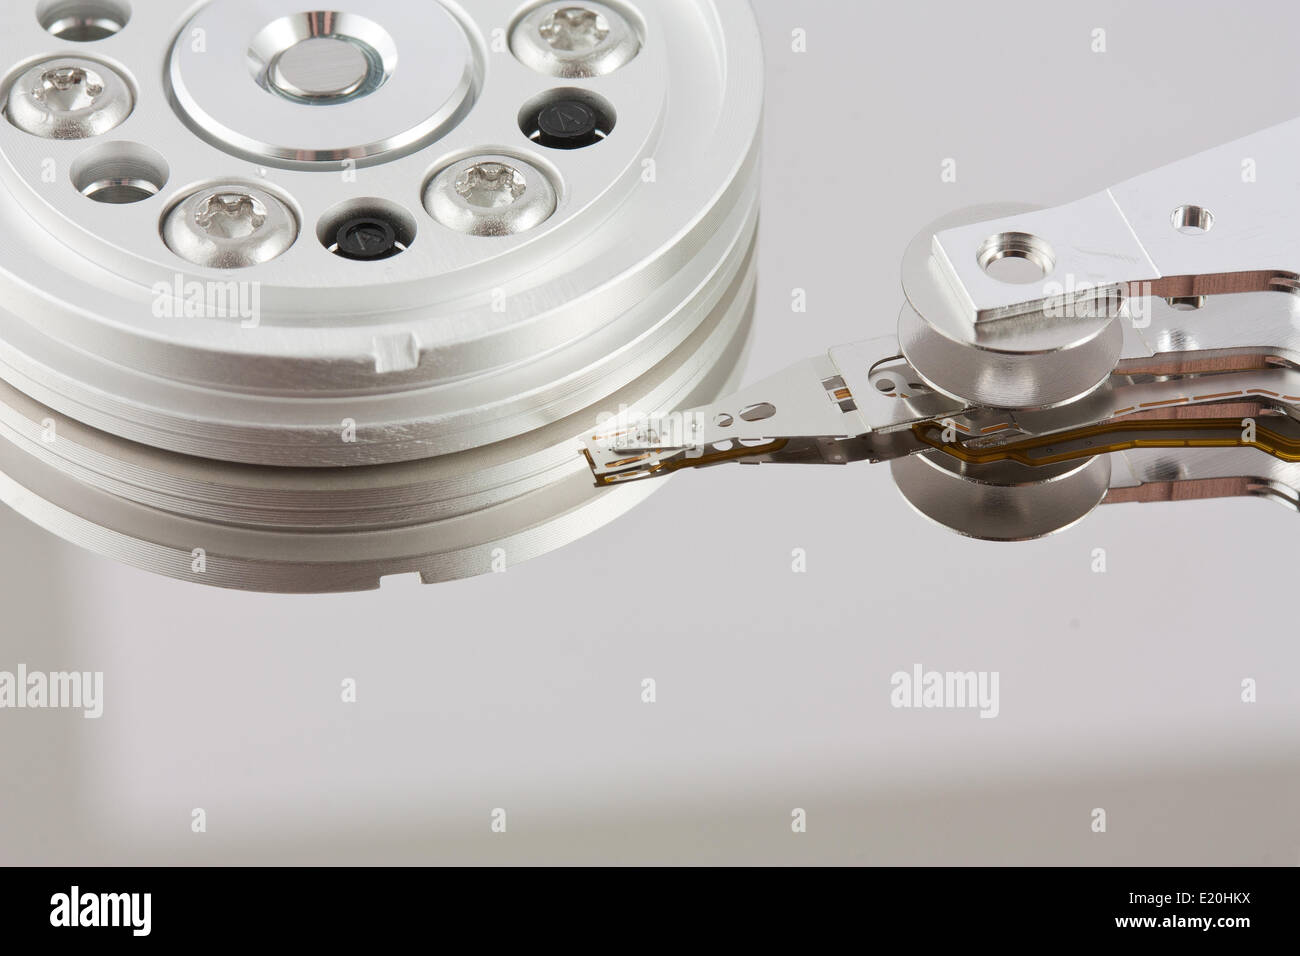 Platters and head of a computer hard drive - Stock Image